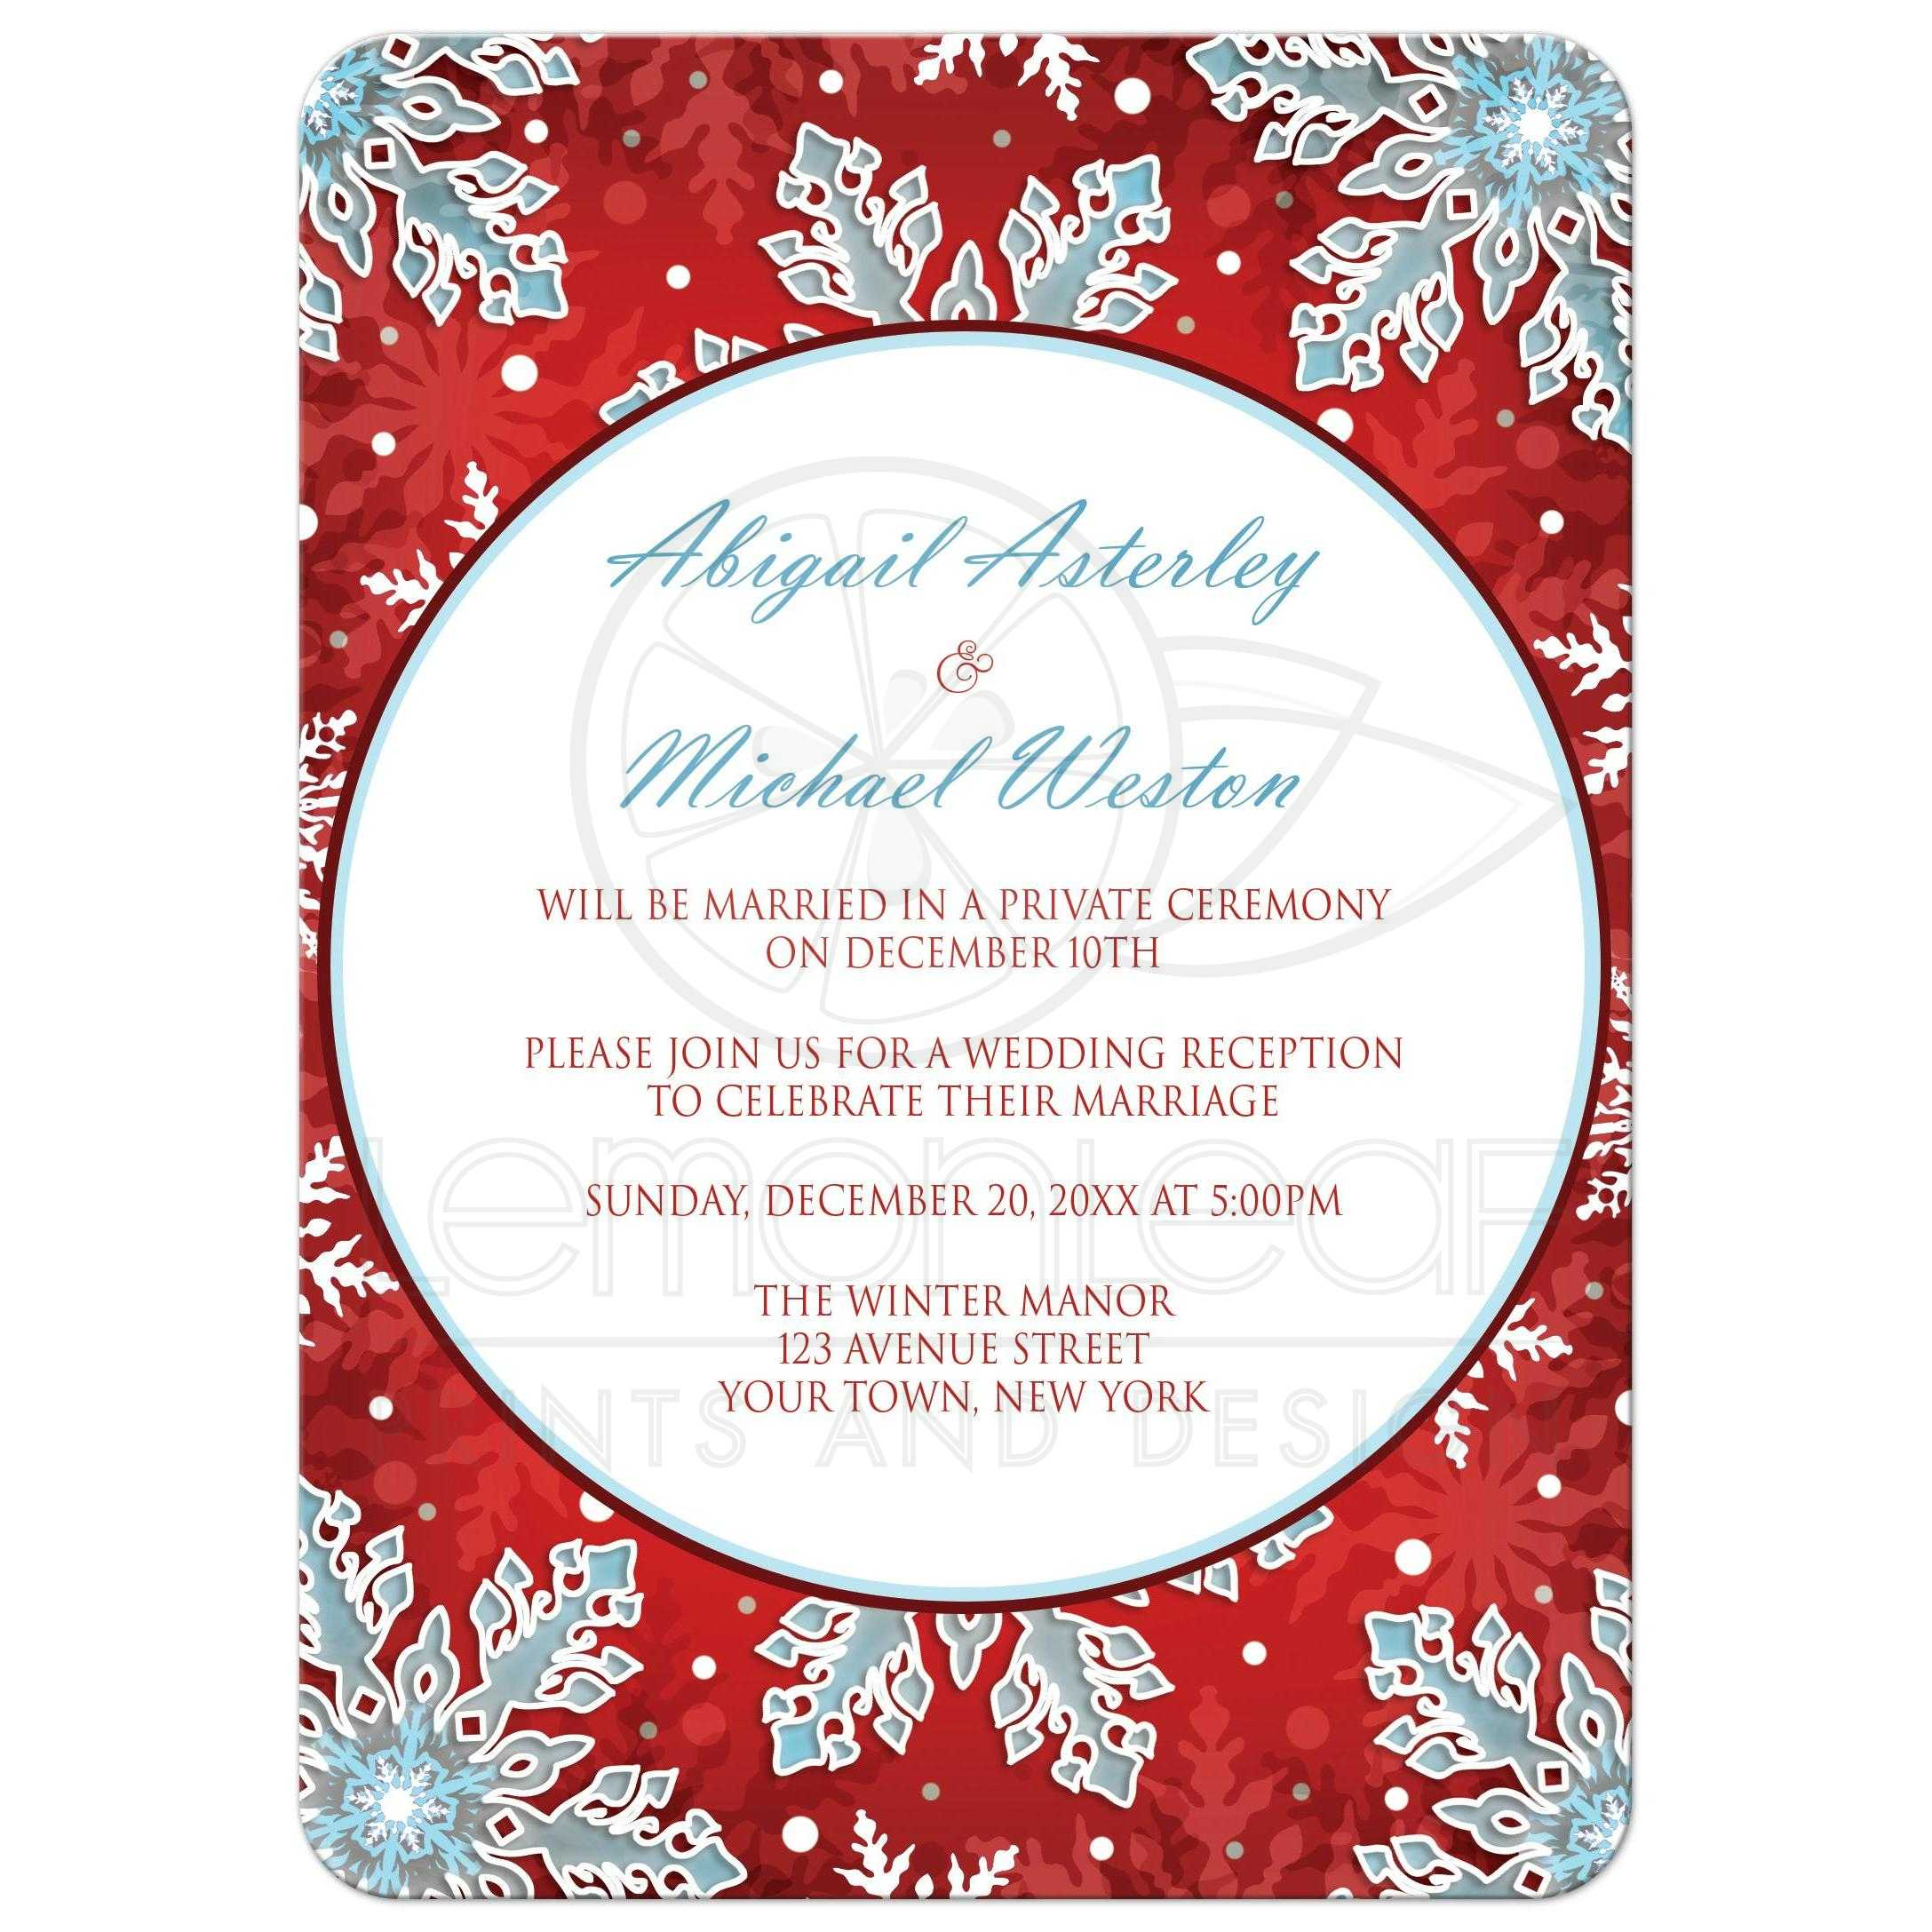 reception only invitations modern red white blue snowflake